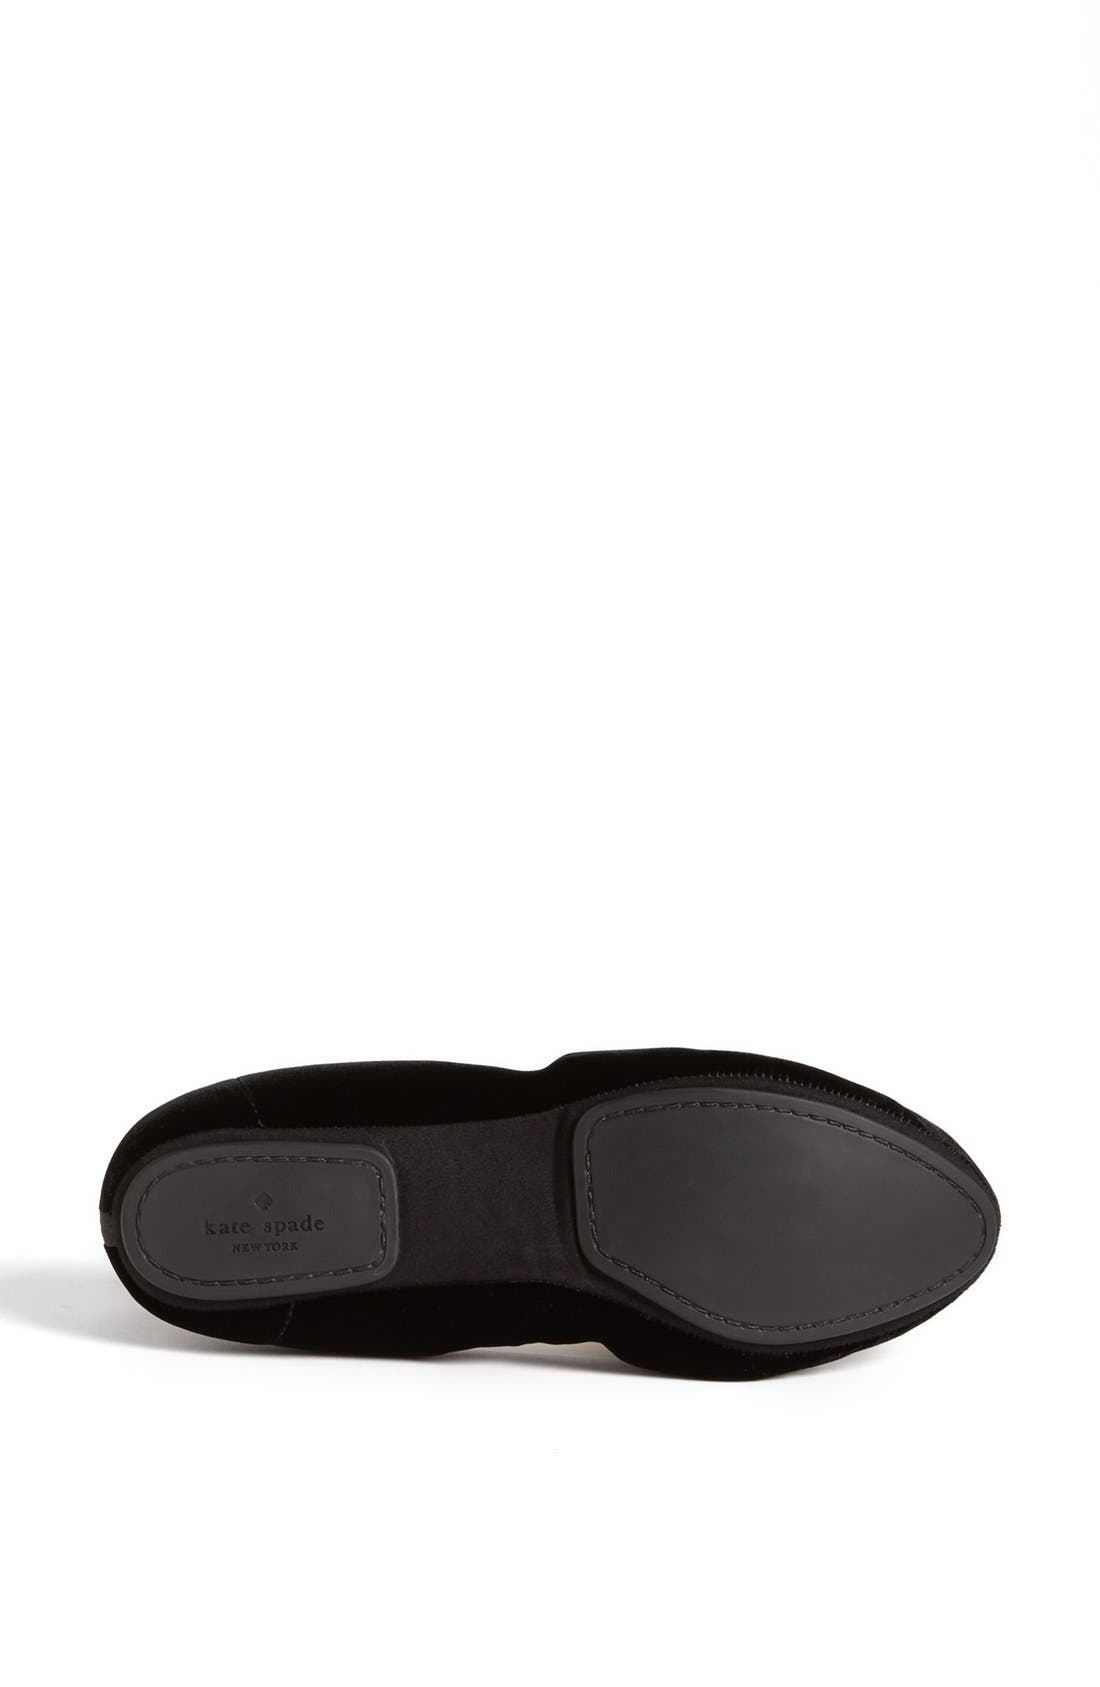 KATE SPADE NEW YORK, 'catcher' flat, Alternate thumbnail 3, color, 001